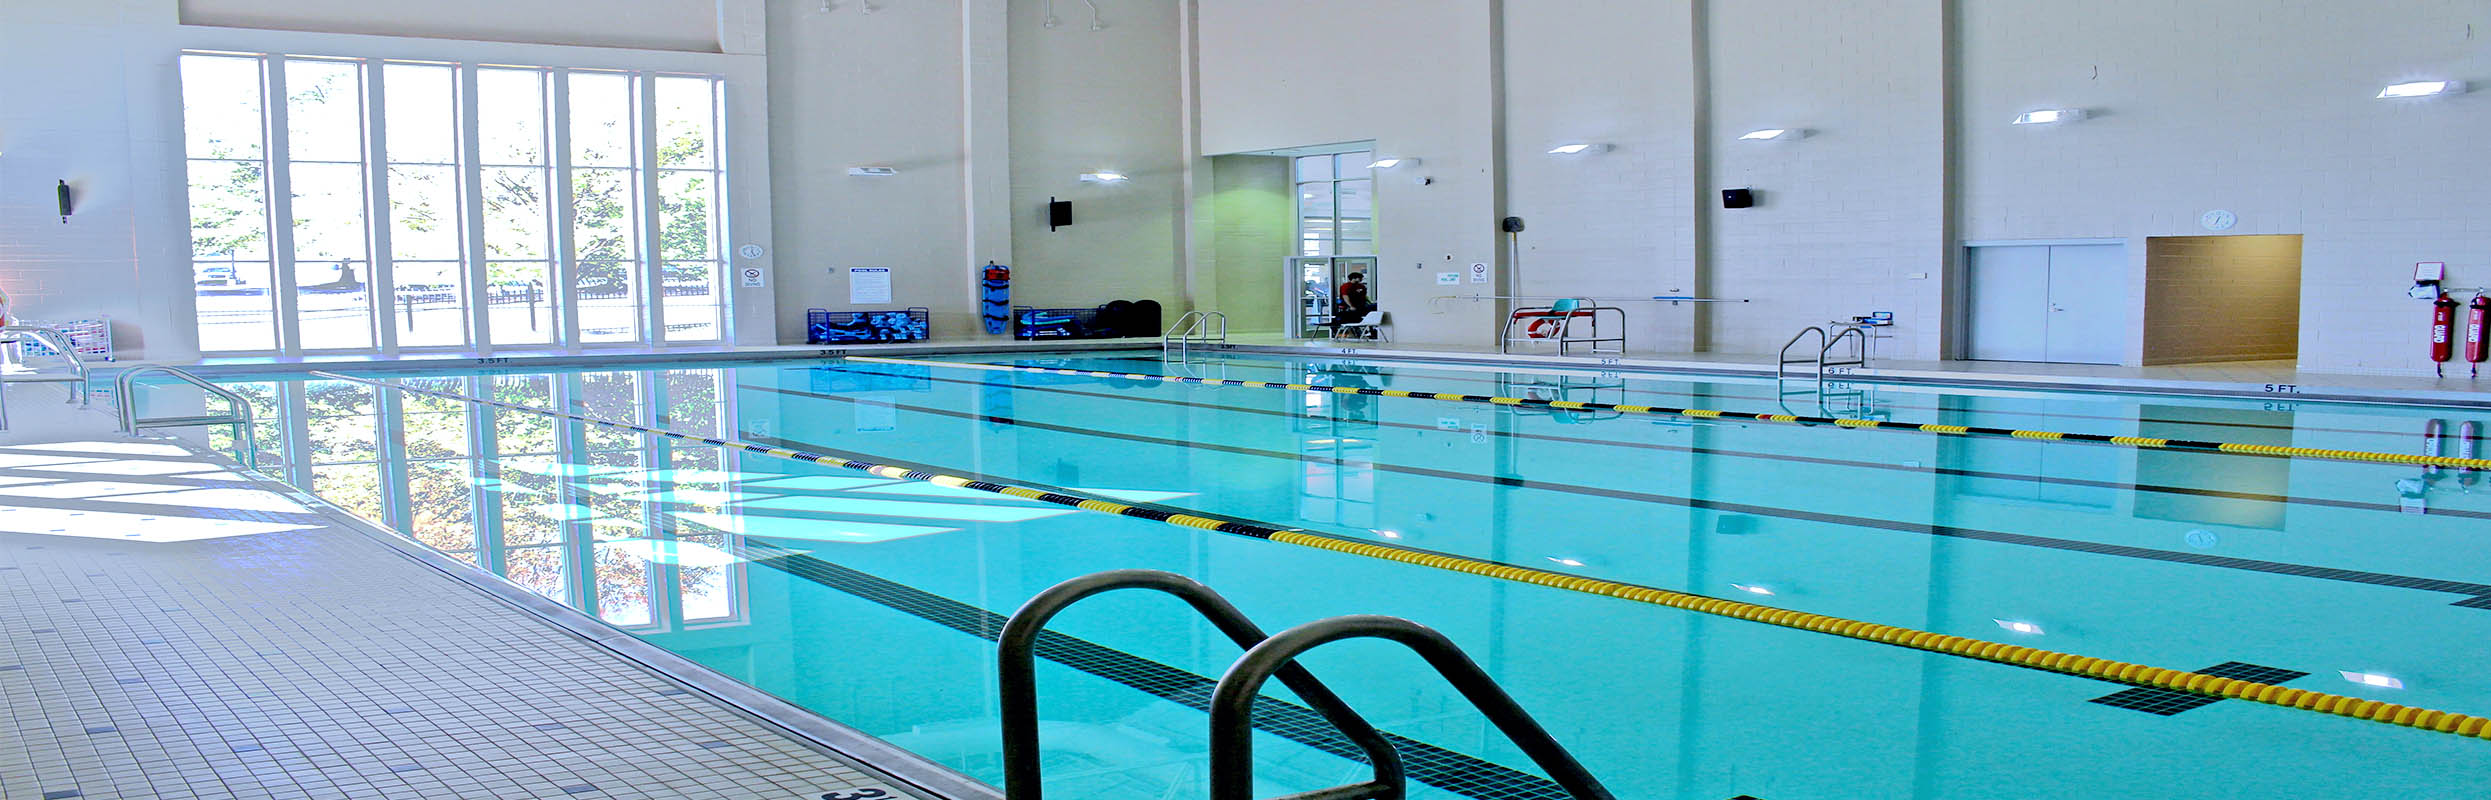 Marietta Recreation and Wellness Center Pool